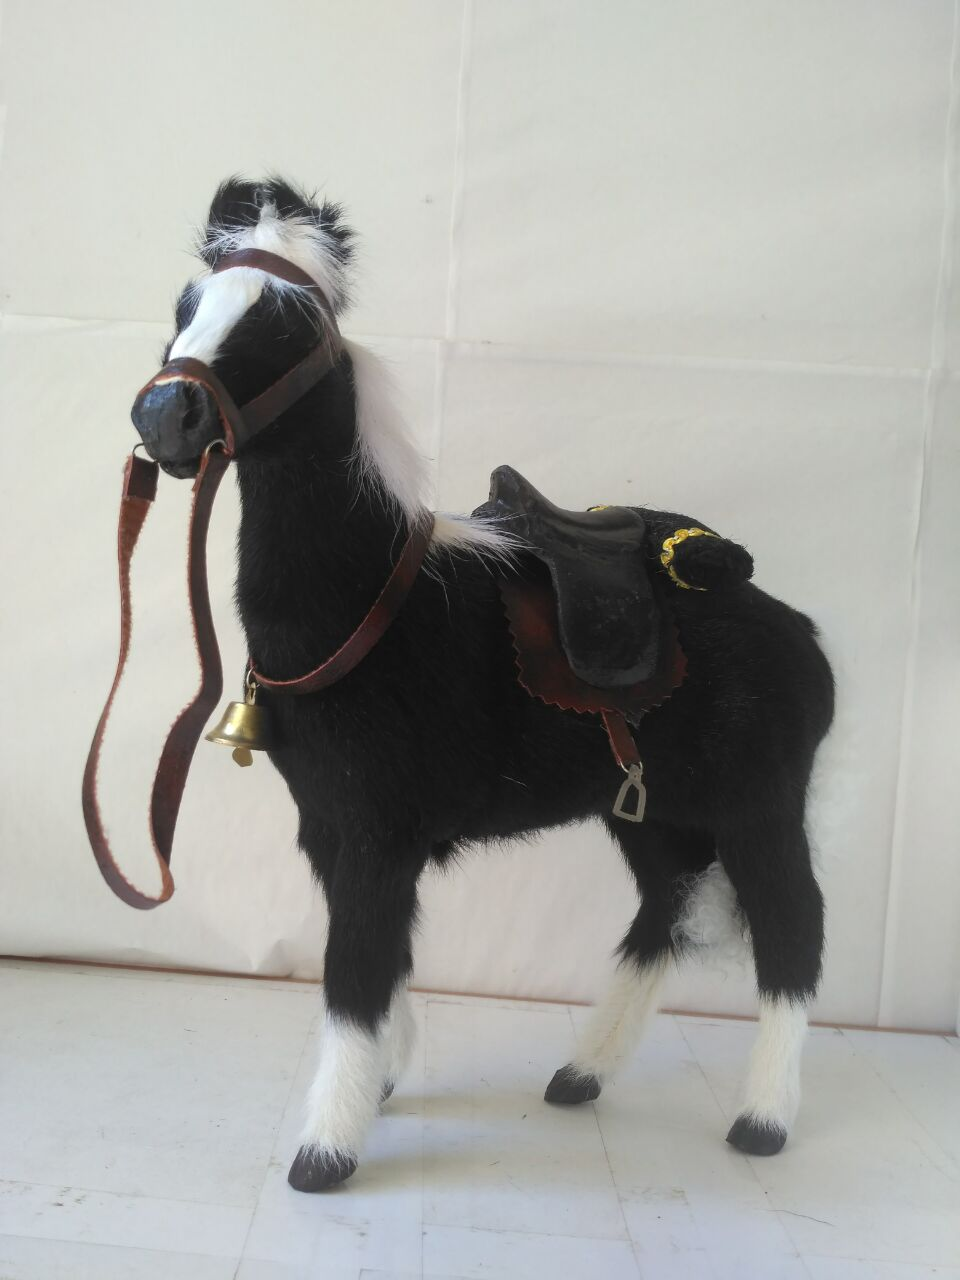 black simulation horse model polyethylene&fur high quality horse doll gift about 28x26cm 1402 simulation male deer 18x25cm model polyethylene